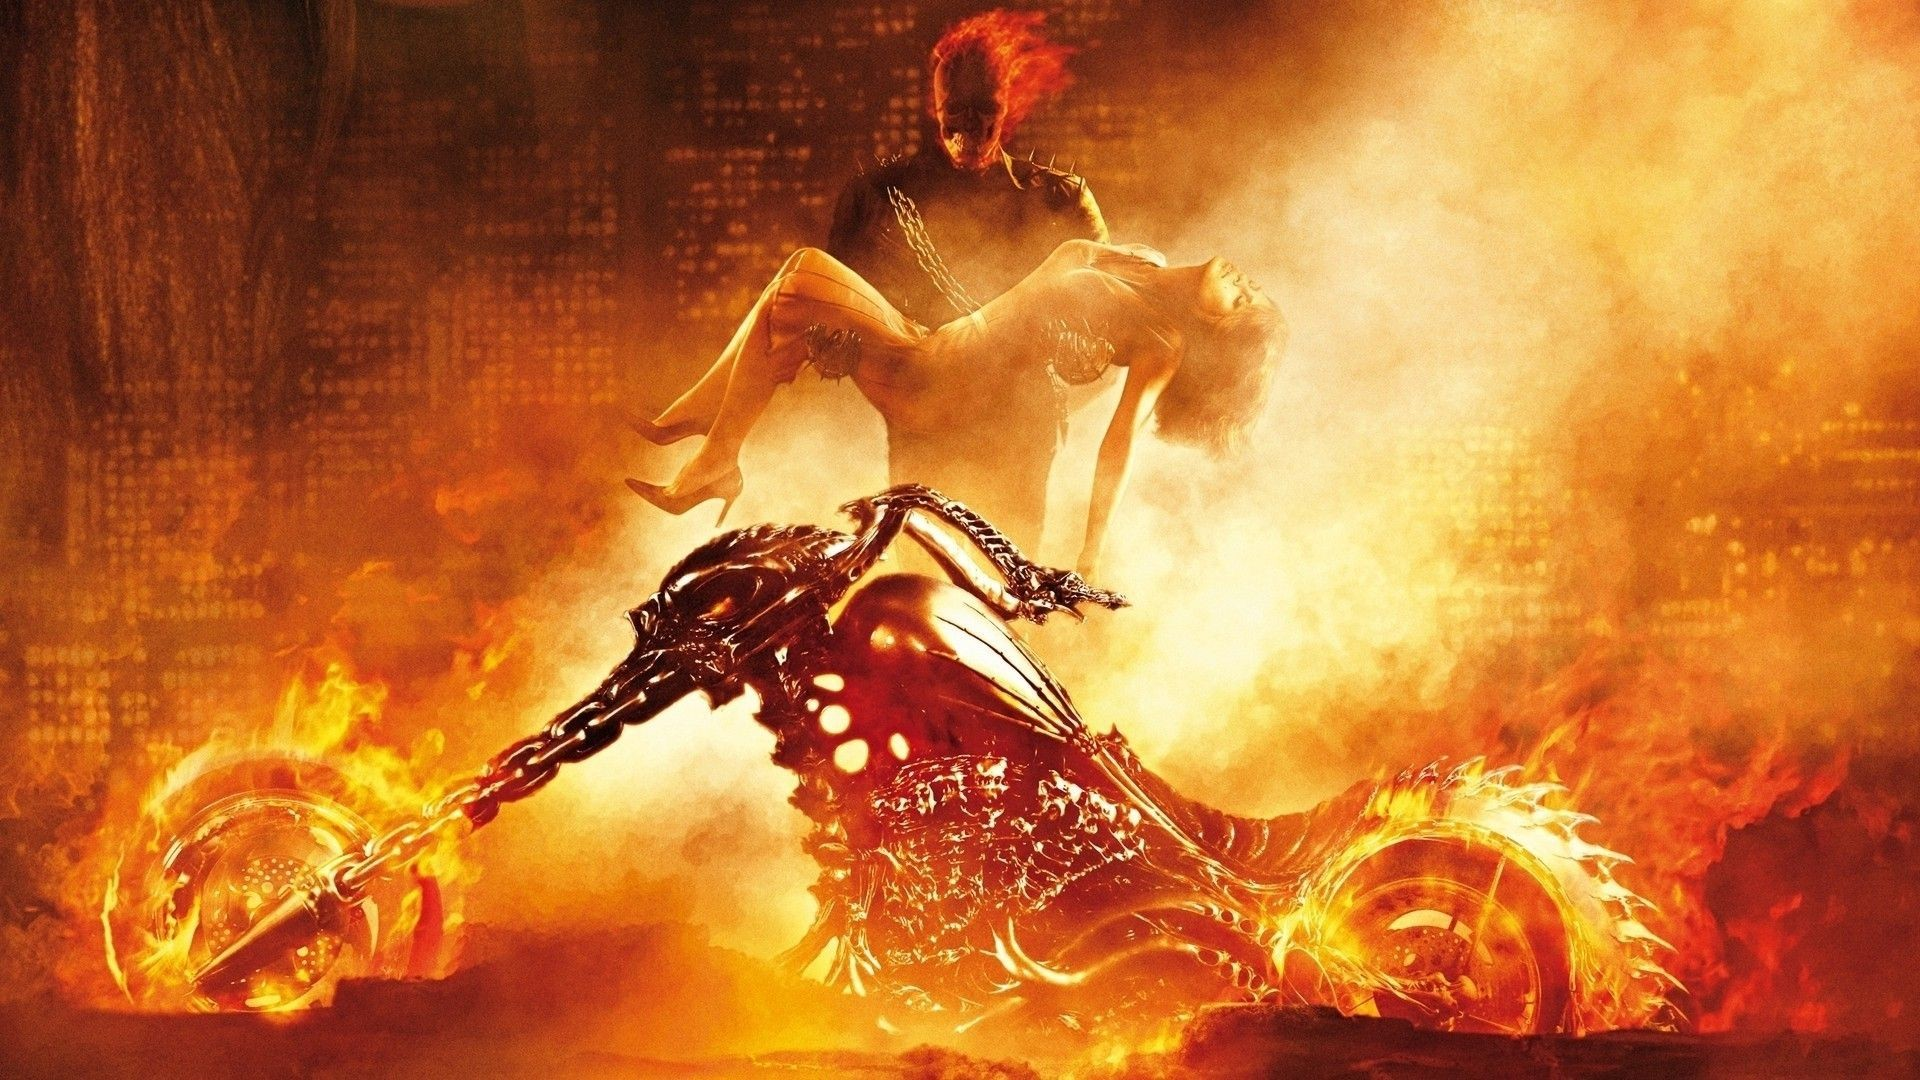 1920x1080 Ghost Rider HD Gorgeous Wallpaper Free HD Wallpaper - Download .